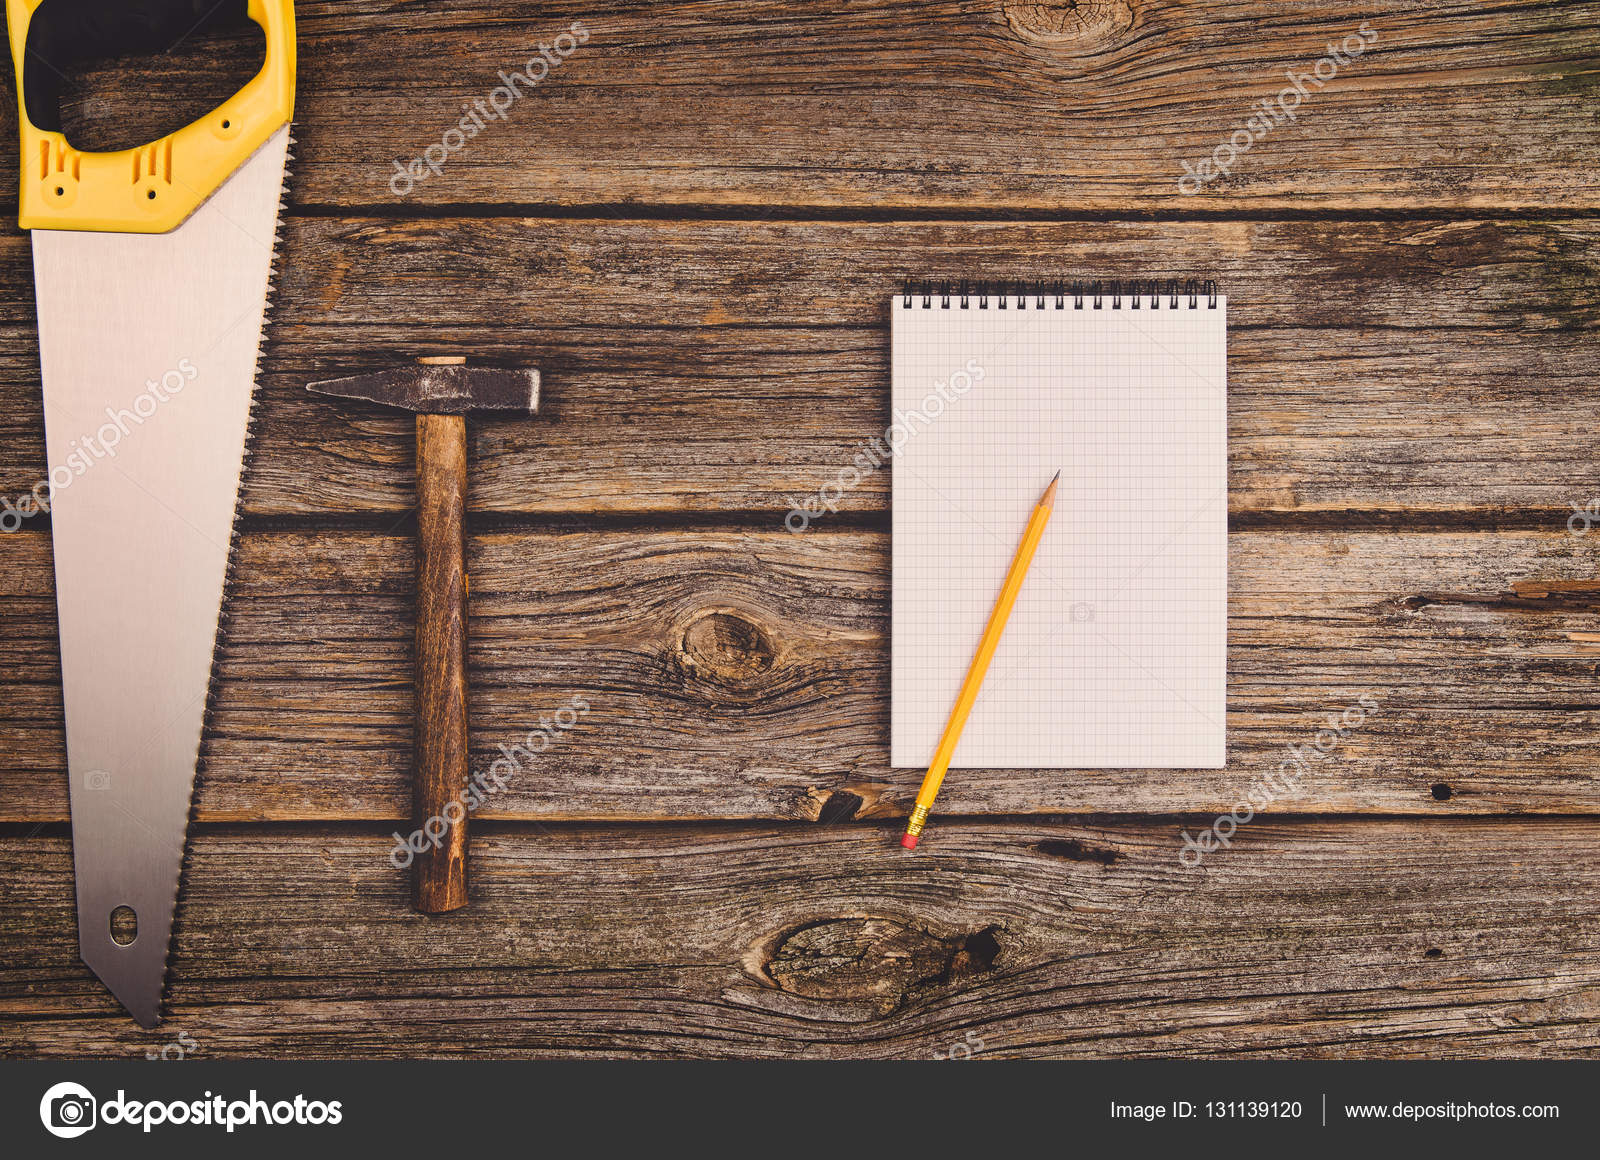 Construction Equipment And Tools Background On Wooden Table Concept Photograph Taken From Above Top View Do It Yourself Theme Photo By Wstockstudio